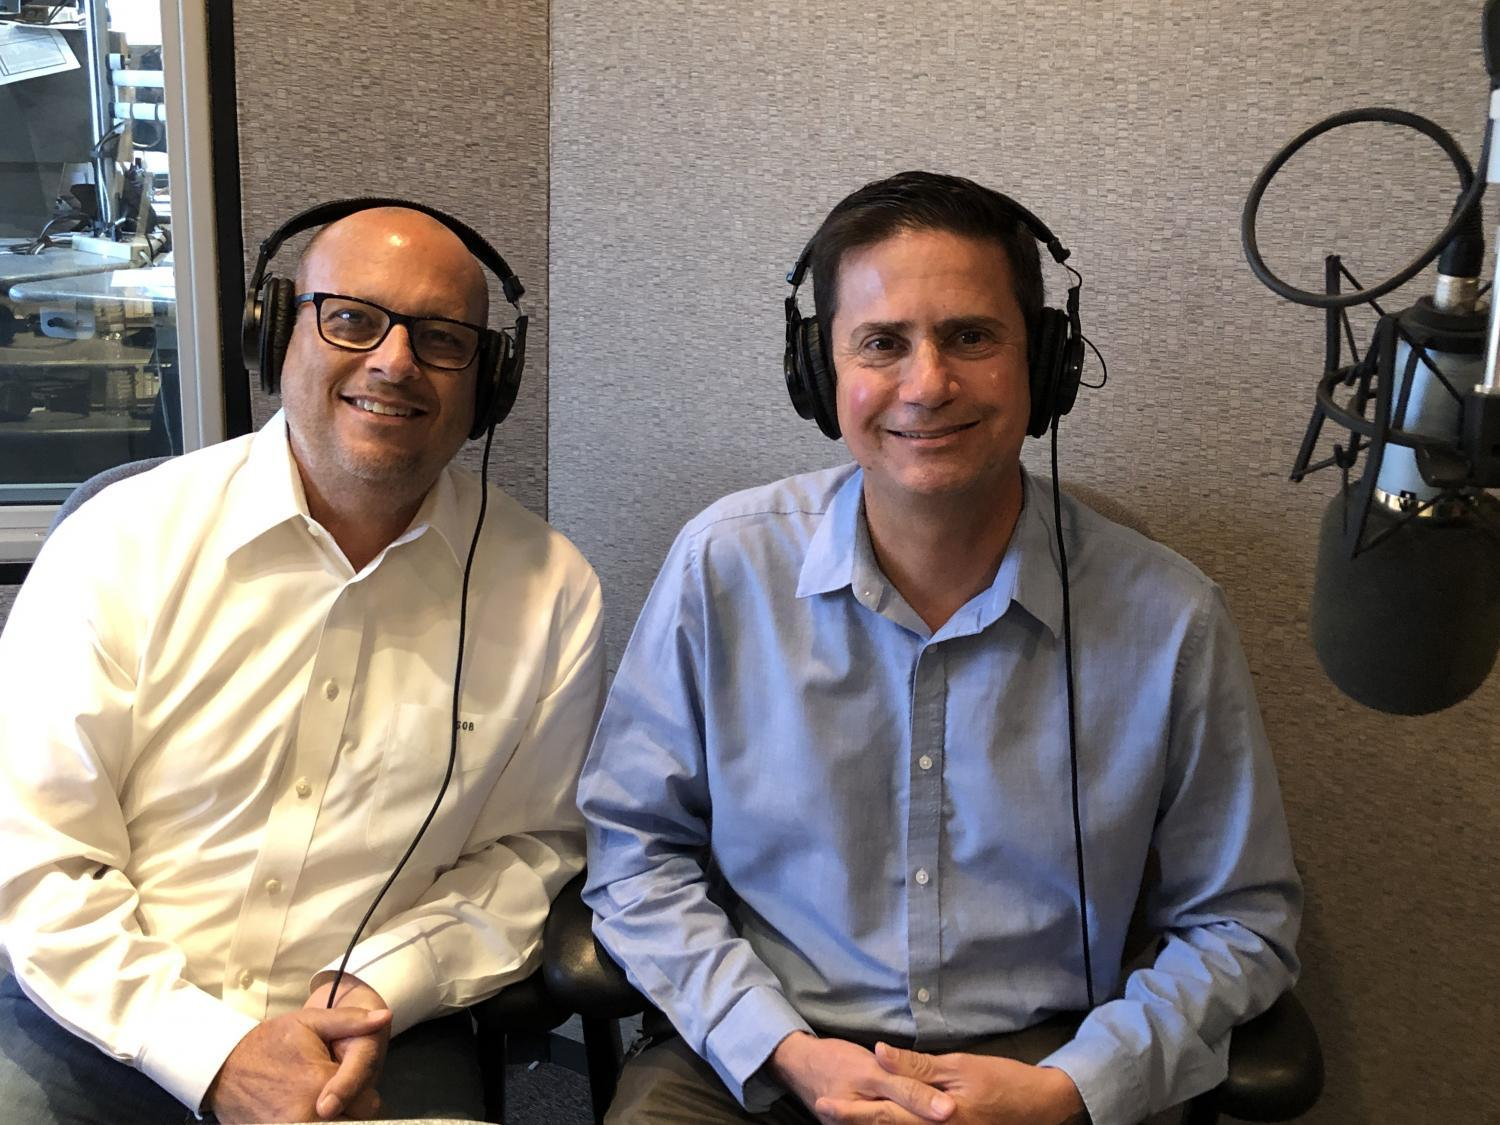 Stan Barnes (left) and David Lujan spoke to KJZZ